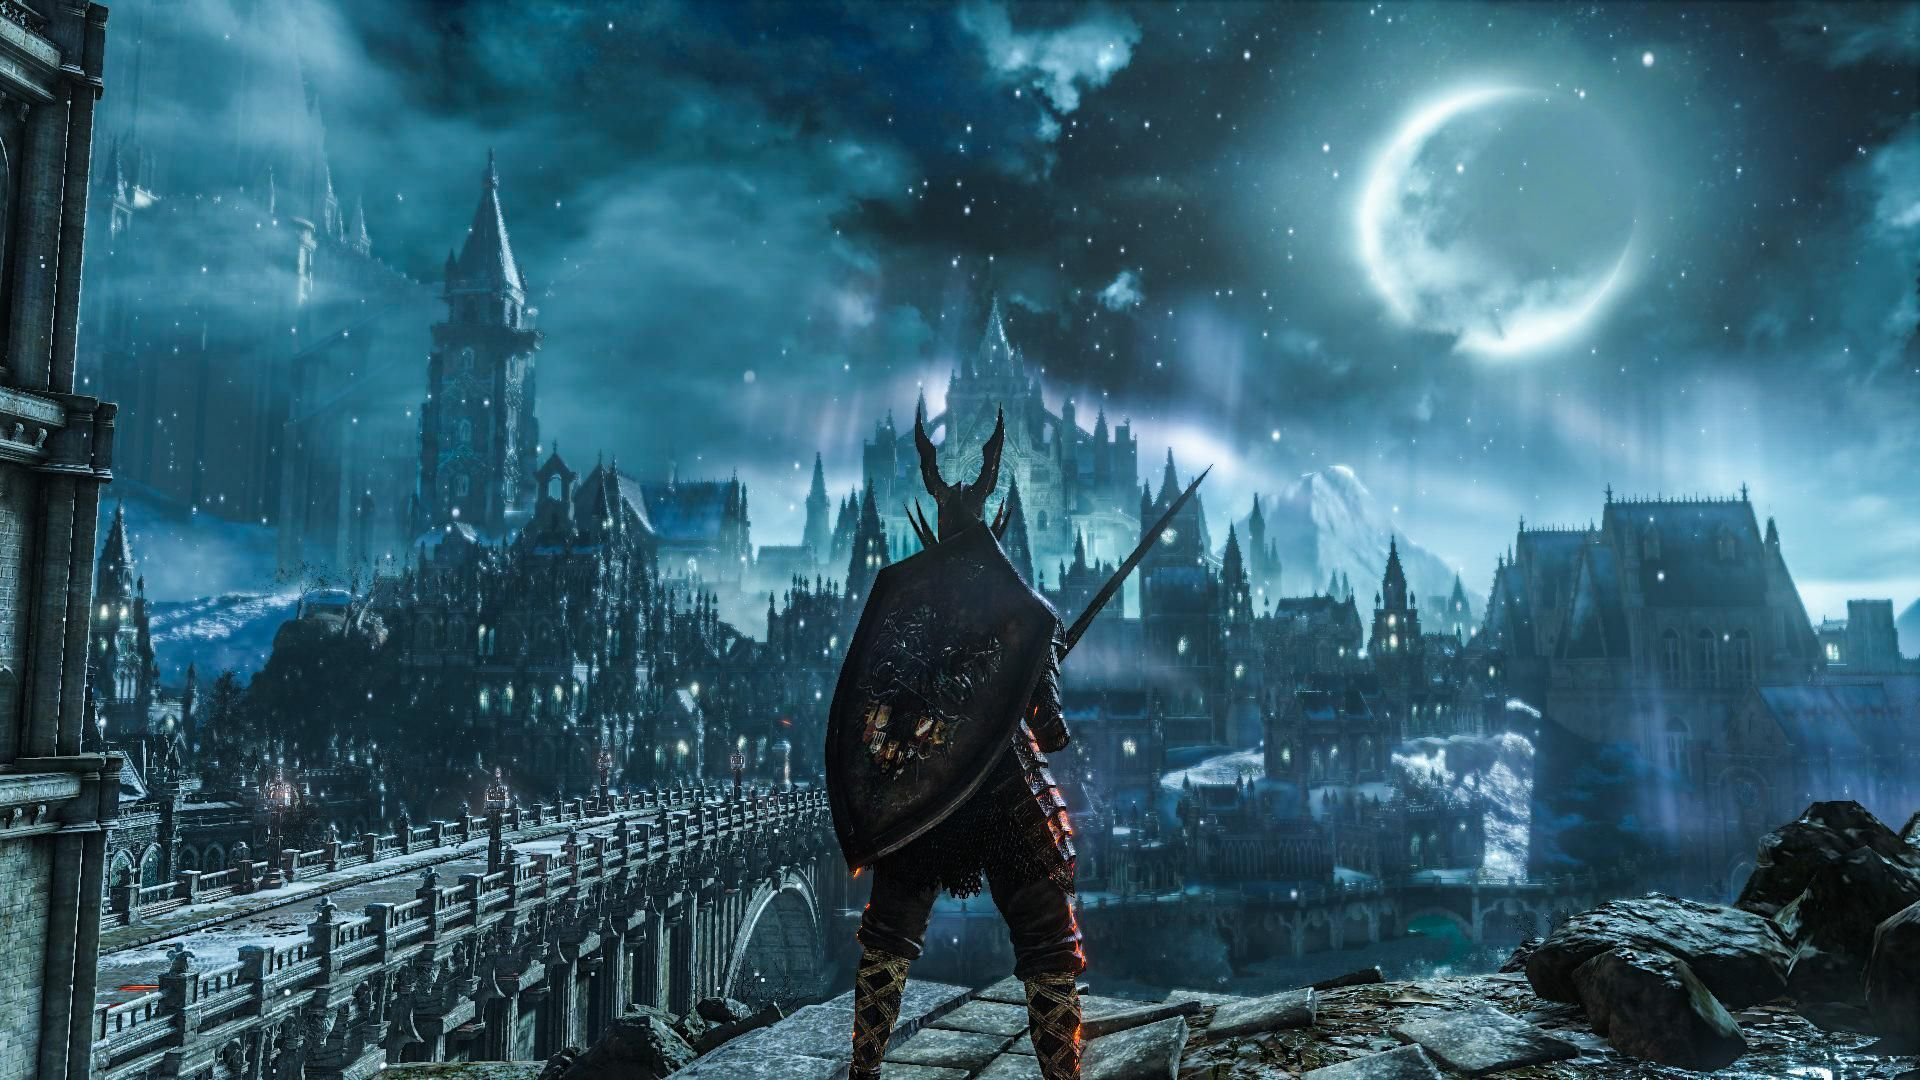 Dark Souls 3 - Irithyll of the Boreal Valley | wallpapers in